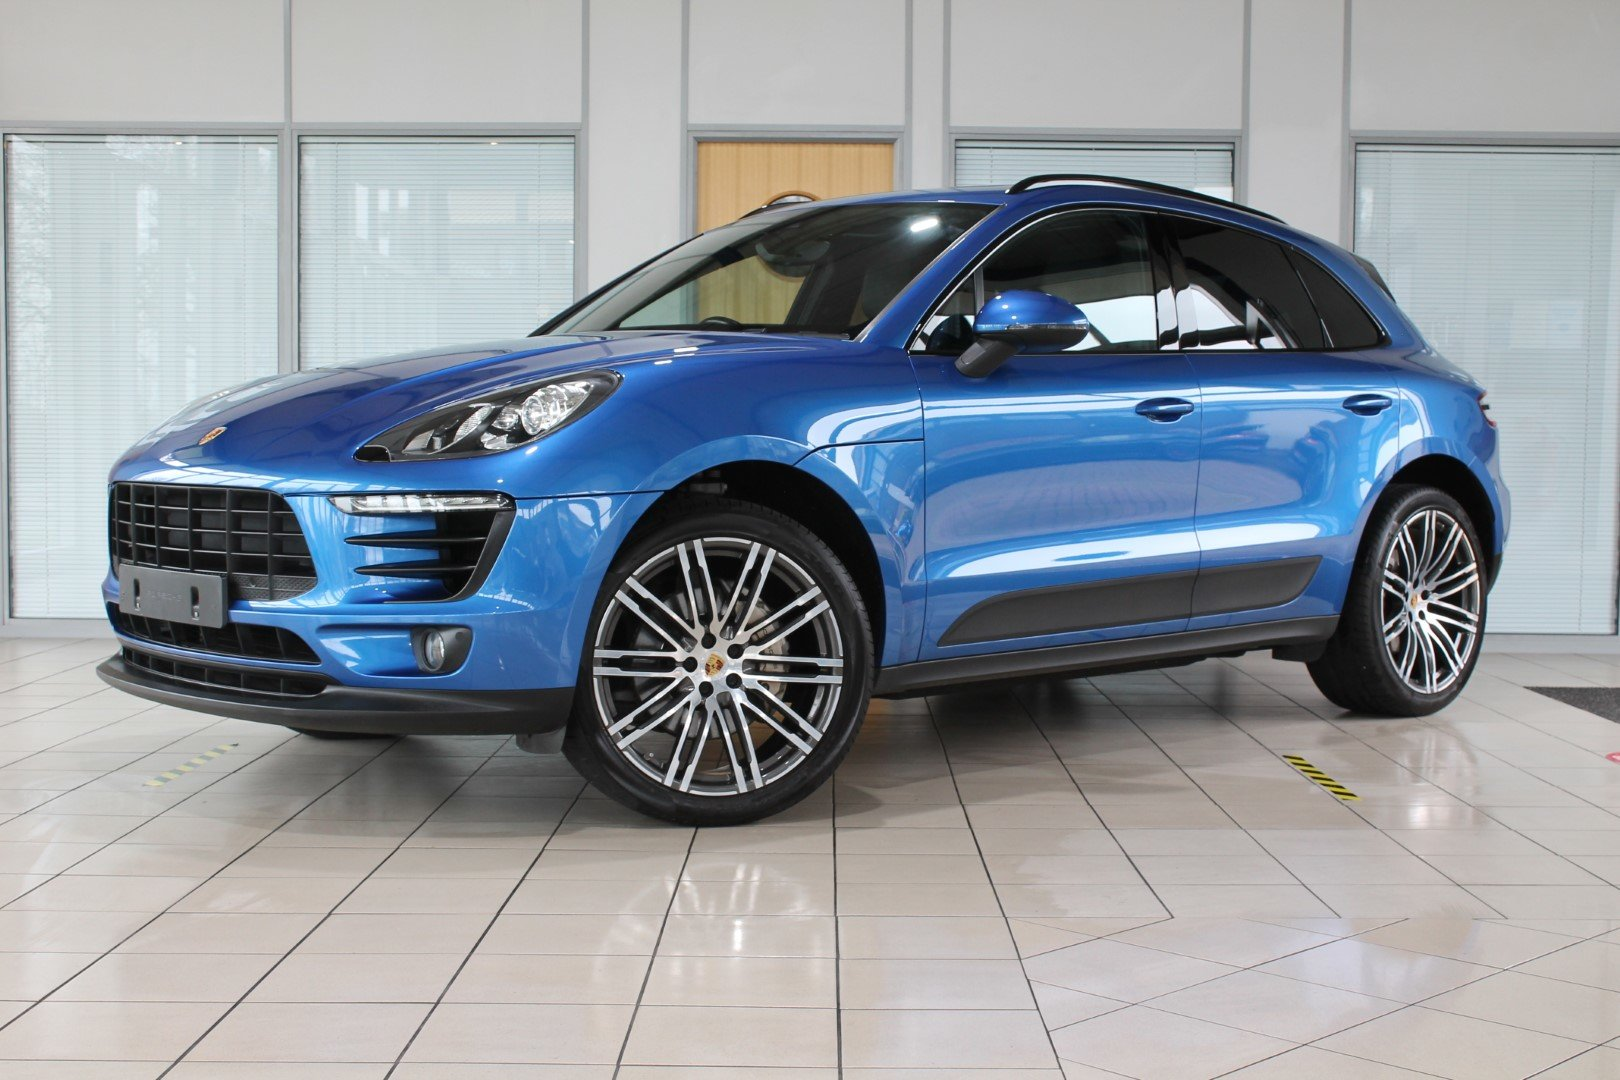 2016 Porsche Macan 3.0 S - NOW SOLD - MORE REQUIRED For Sale (picture 1 of 12)